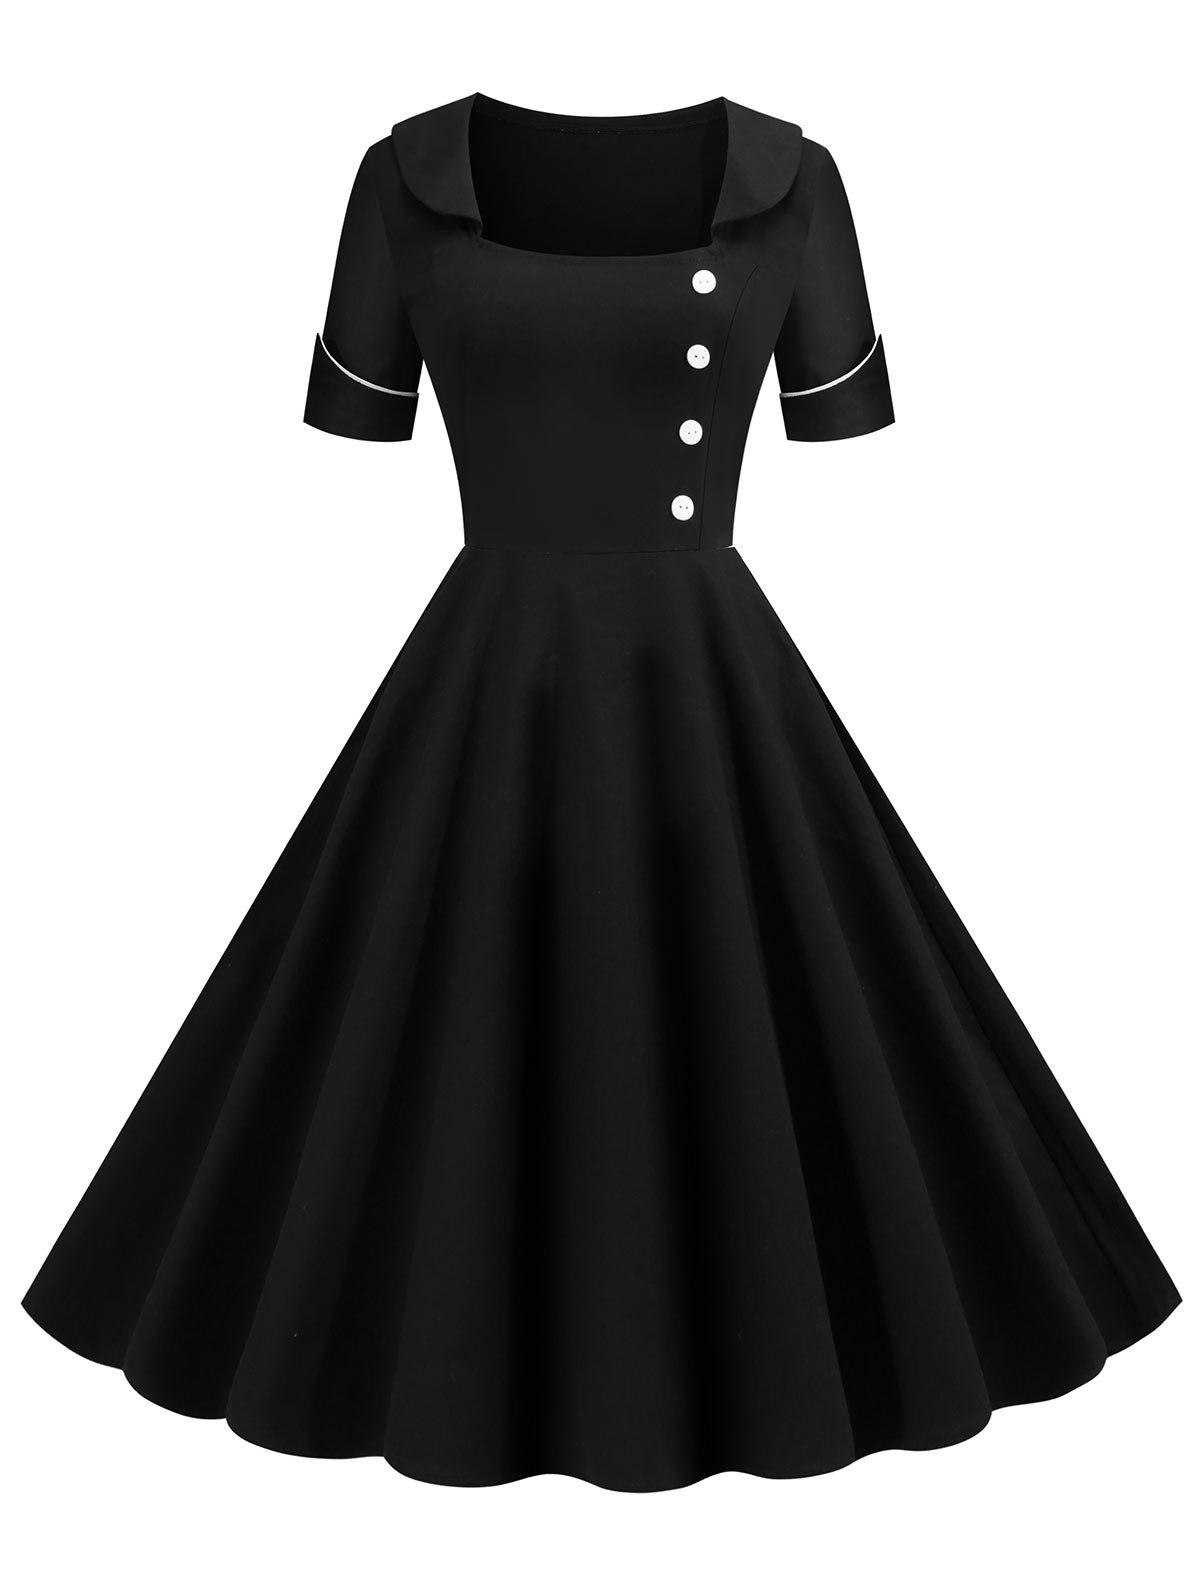 Buy Low Cut Buttoned Contrast Piping Vintage Dress